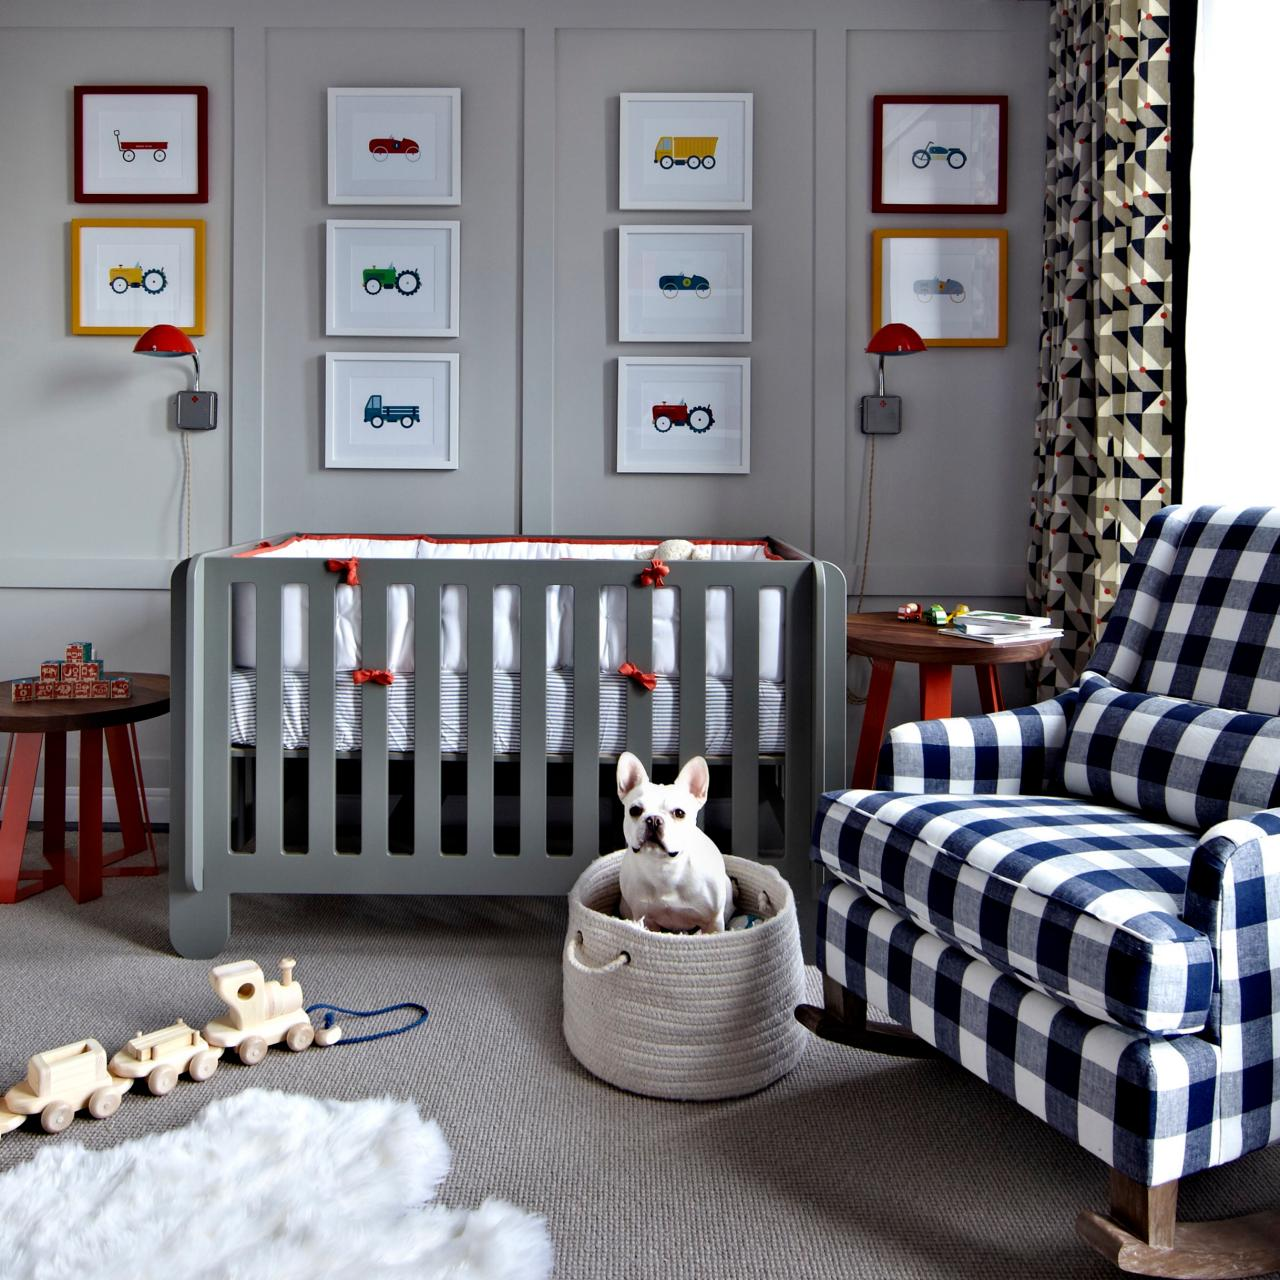 Baby Nursery Decorating Checklist: 12 Ideas To Store & Display Baby Things In Your Nursery